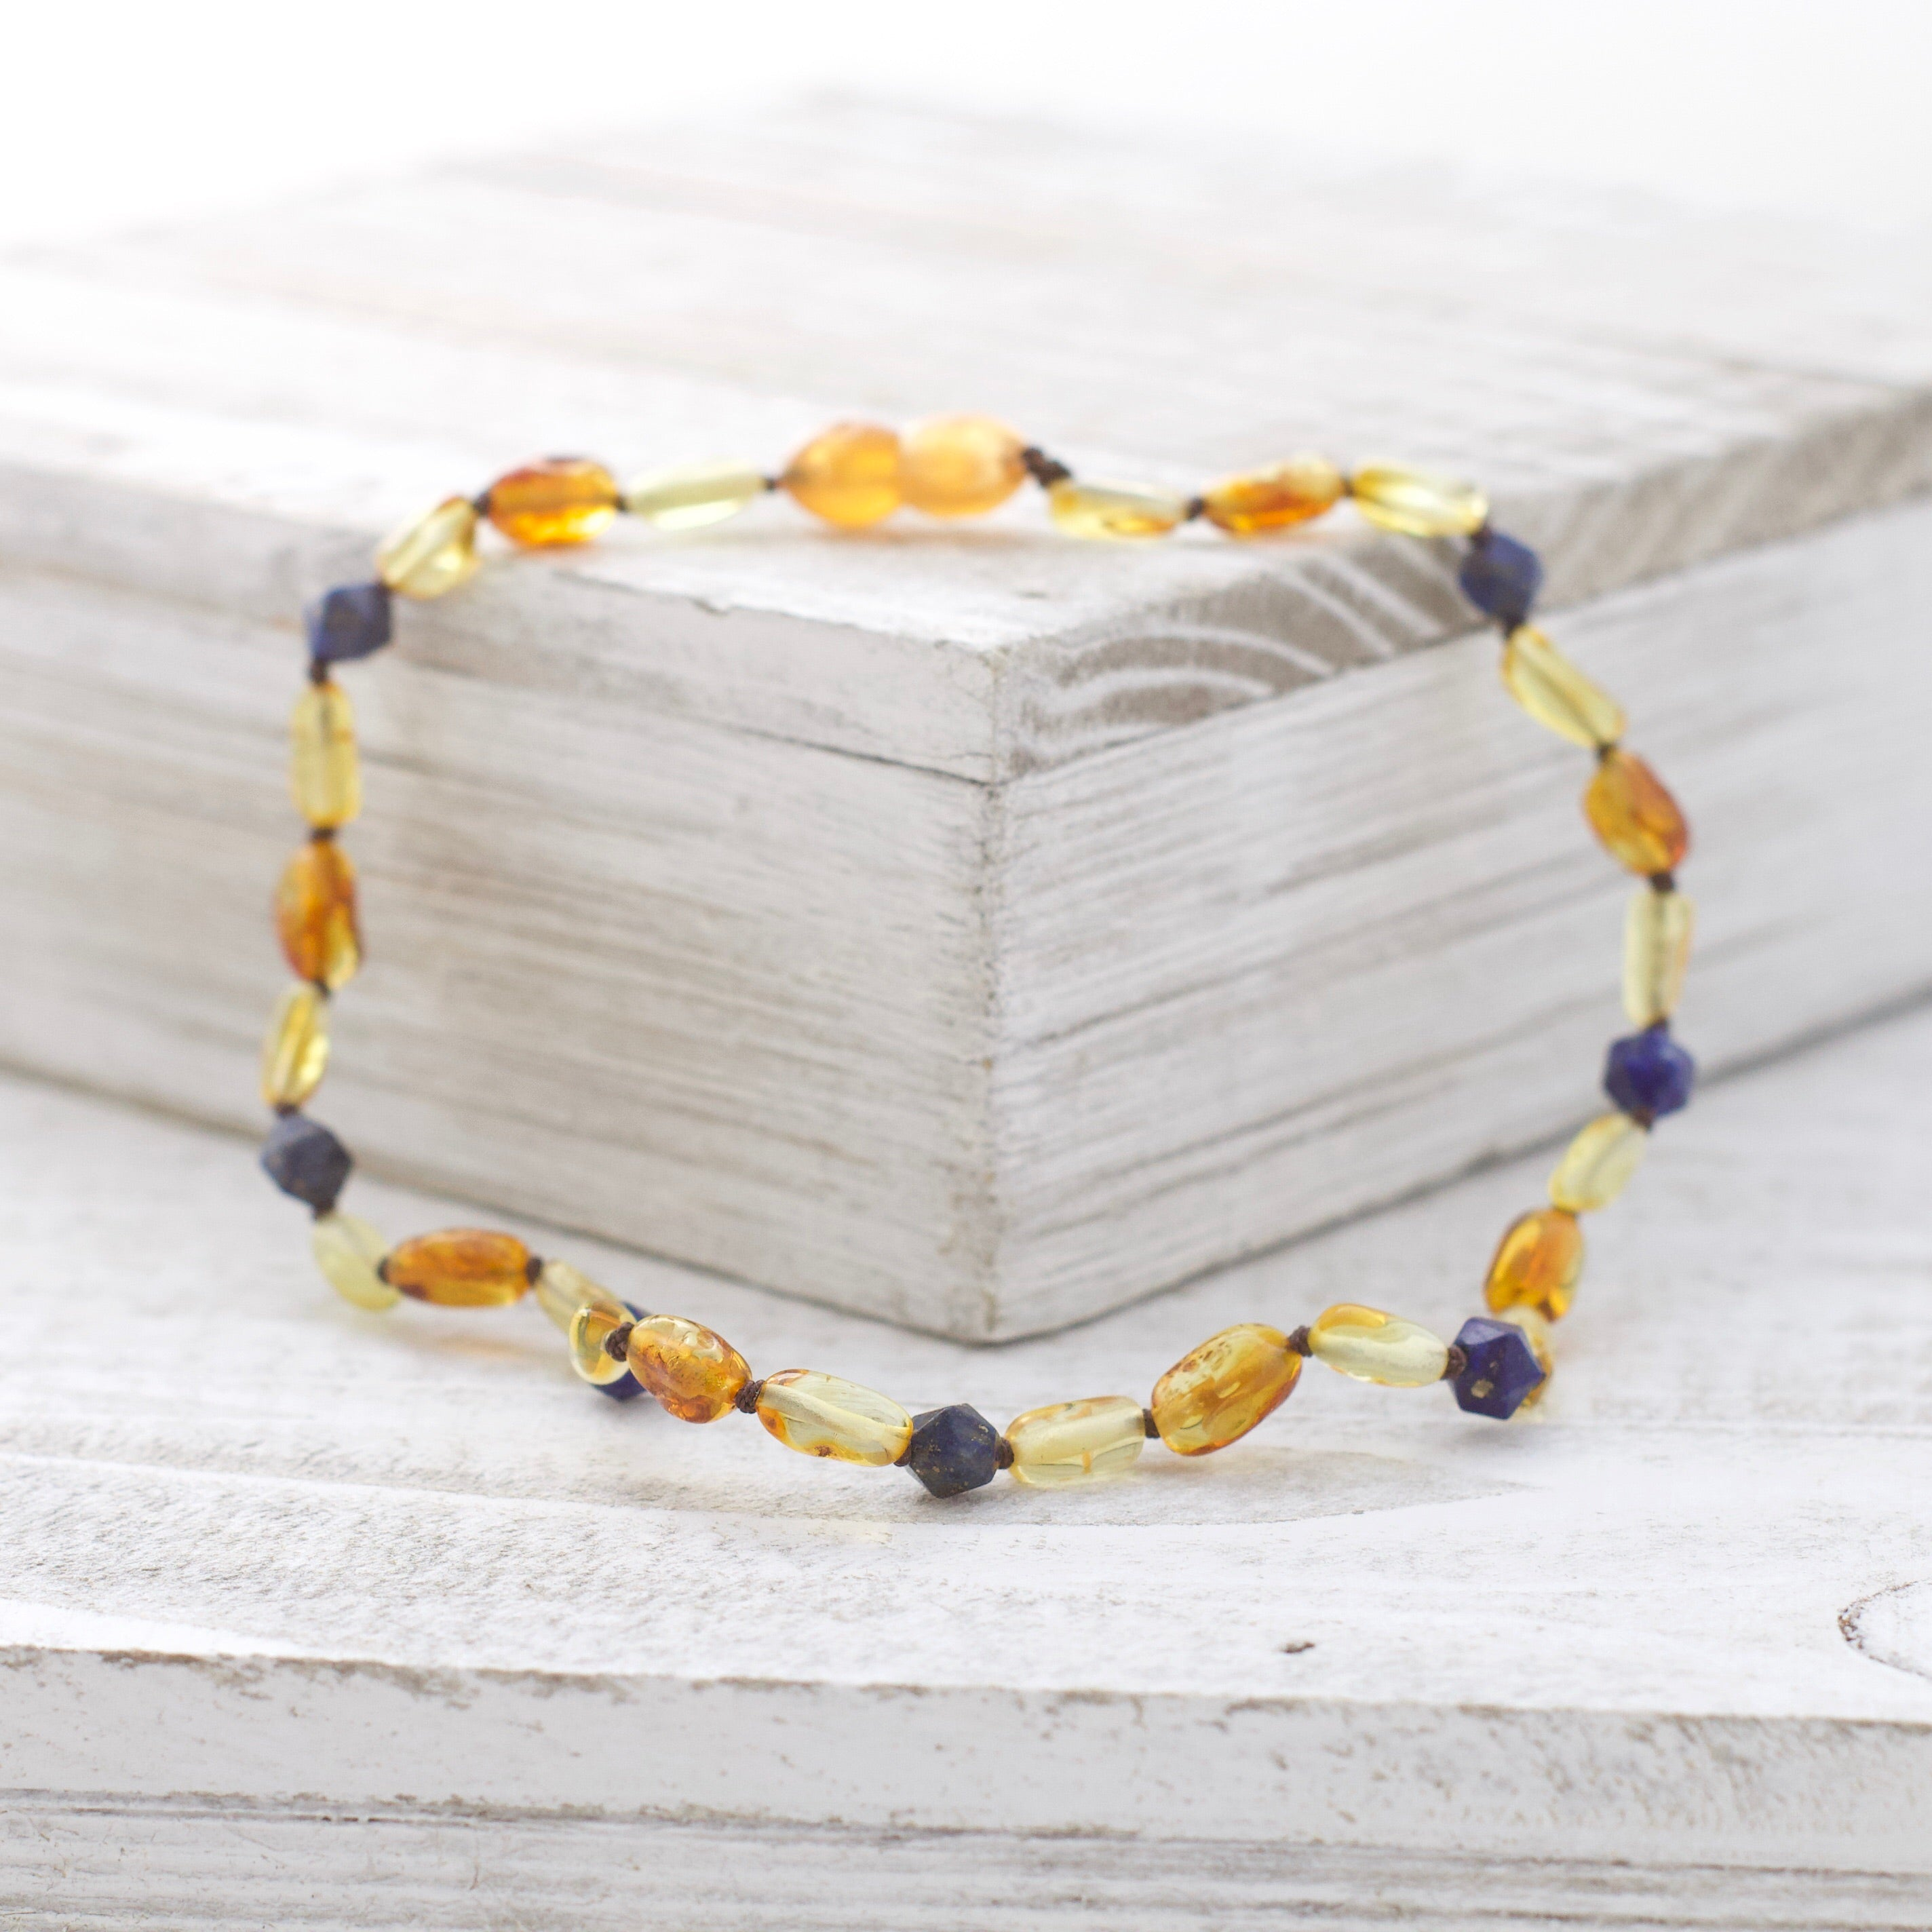 September Birthstone Necklace | Amber and Lapis Lazuli Necklace | Baltic Amber Teething Necklace